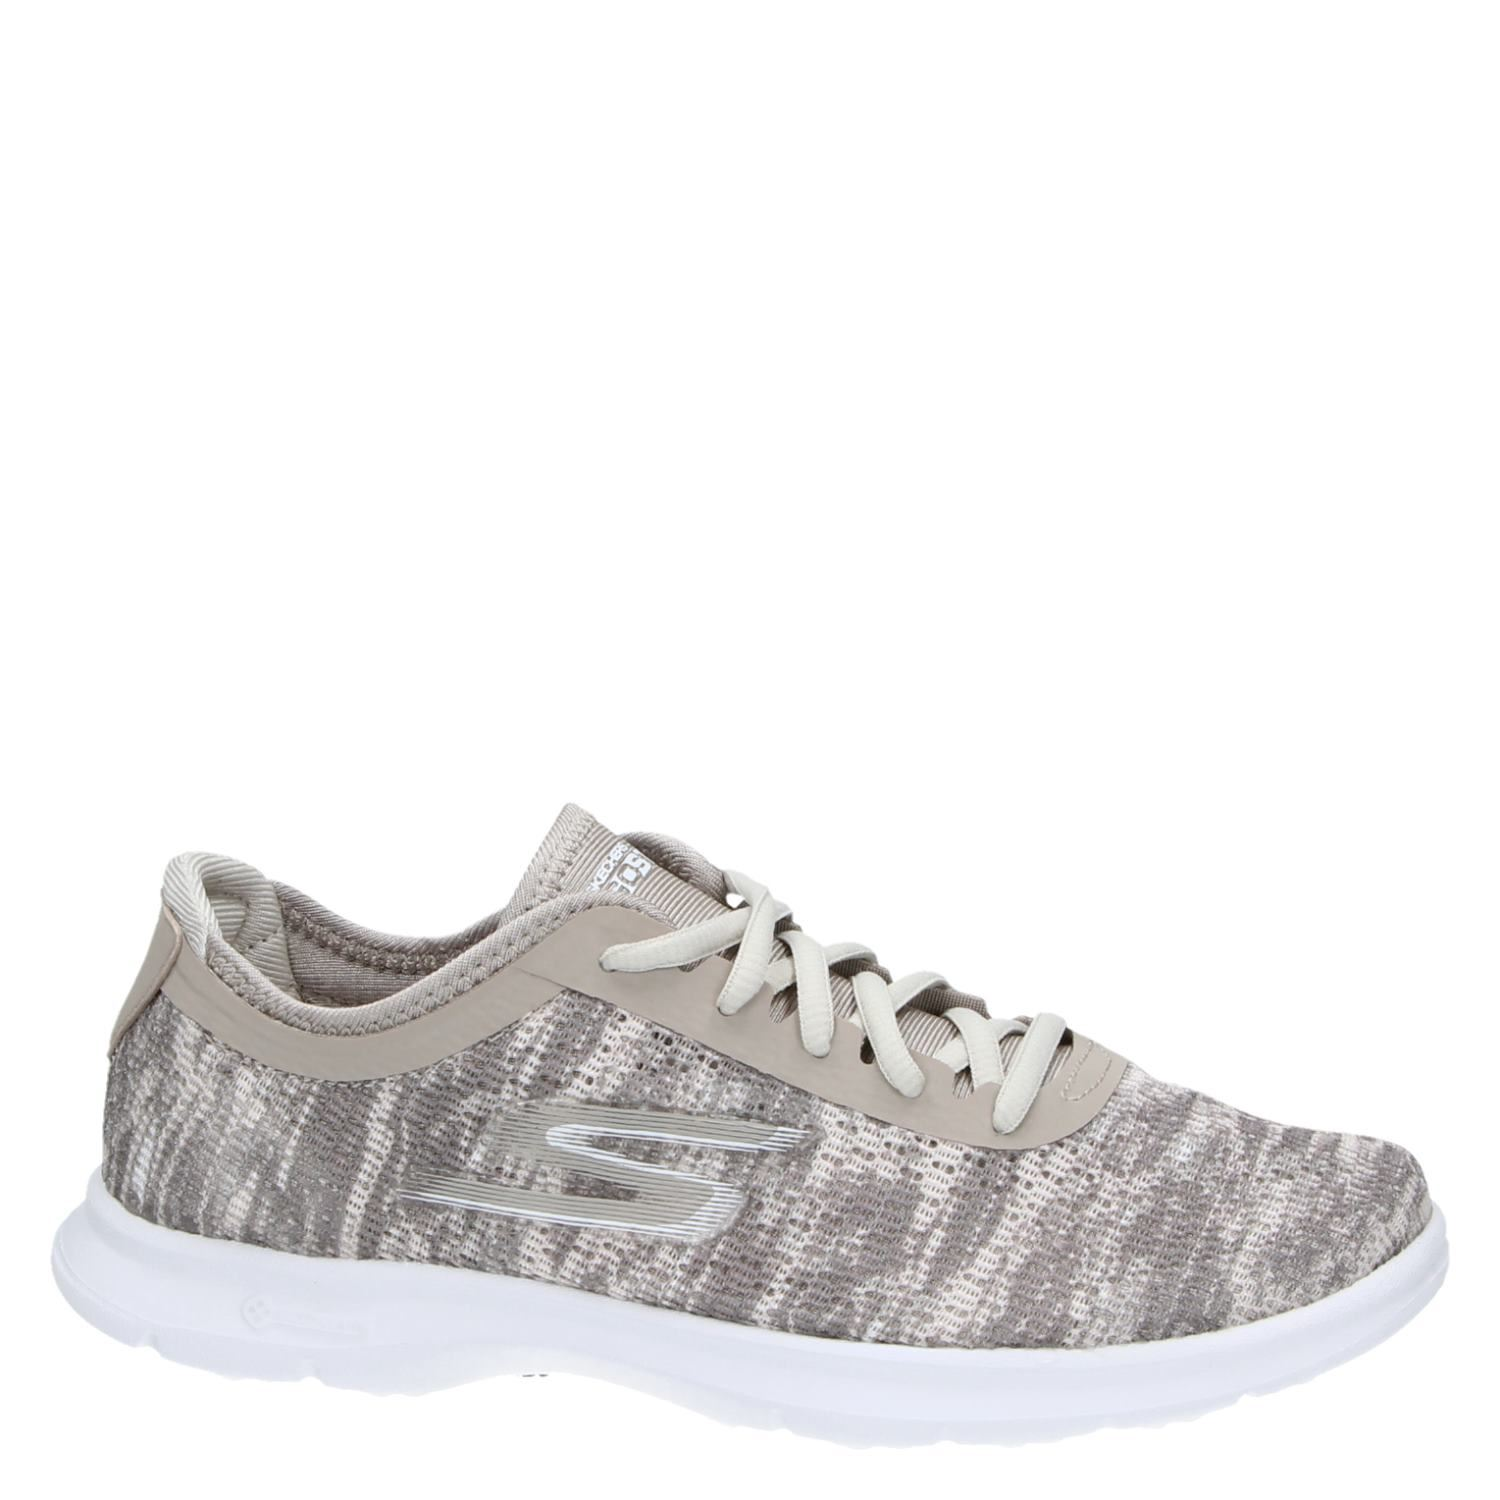 Skechers Dames Skechers Dames Lage Sneakers Wit